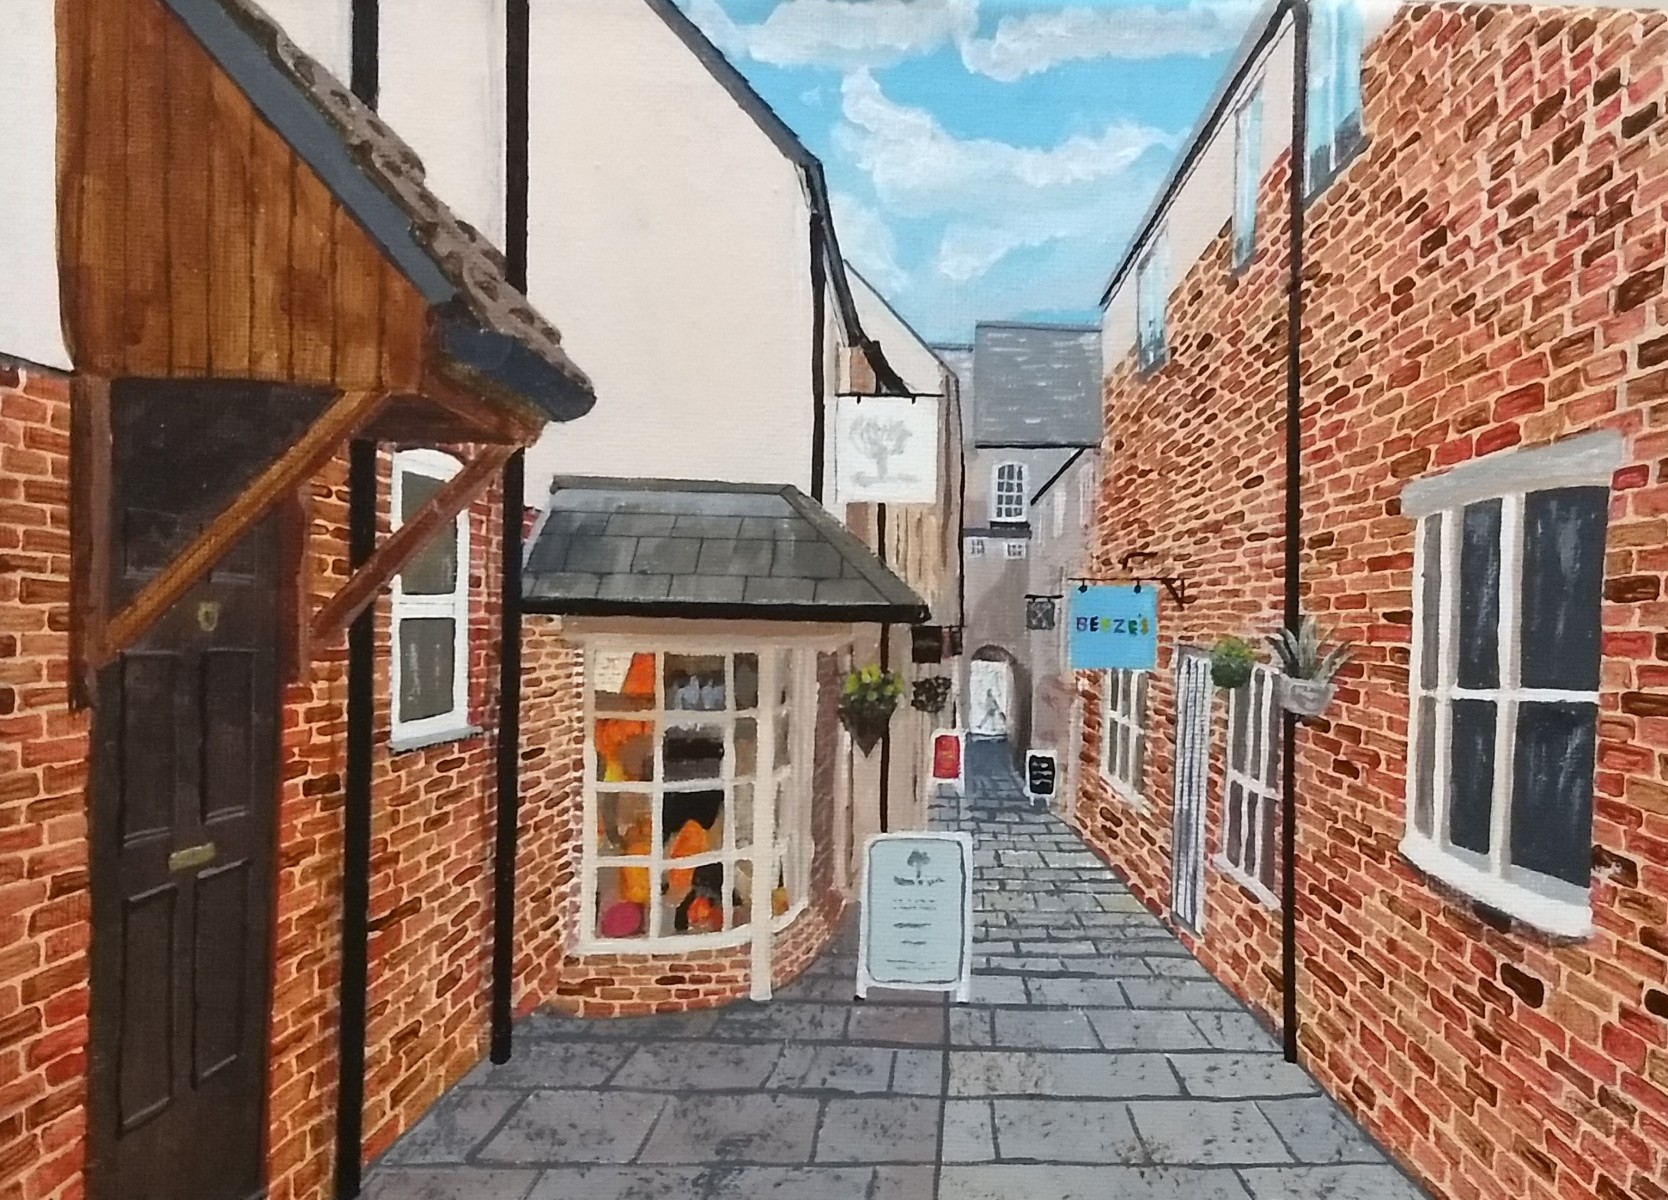 The Ginnel, Devizes